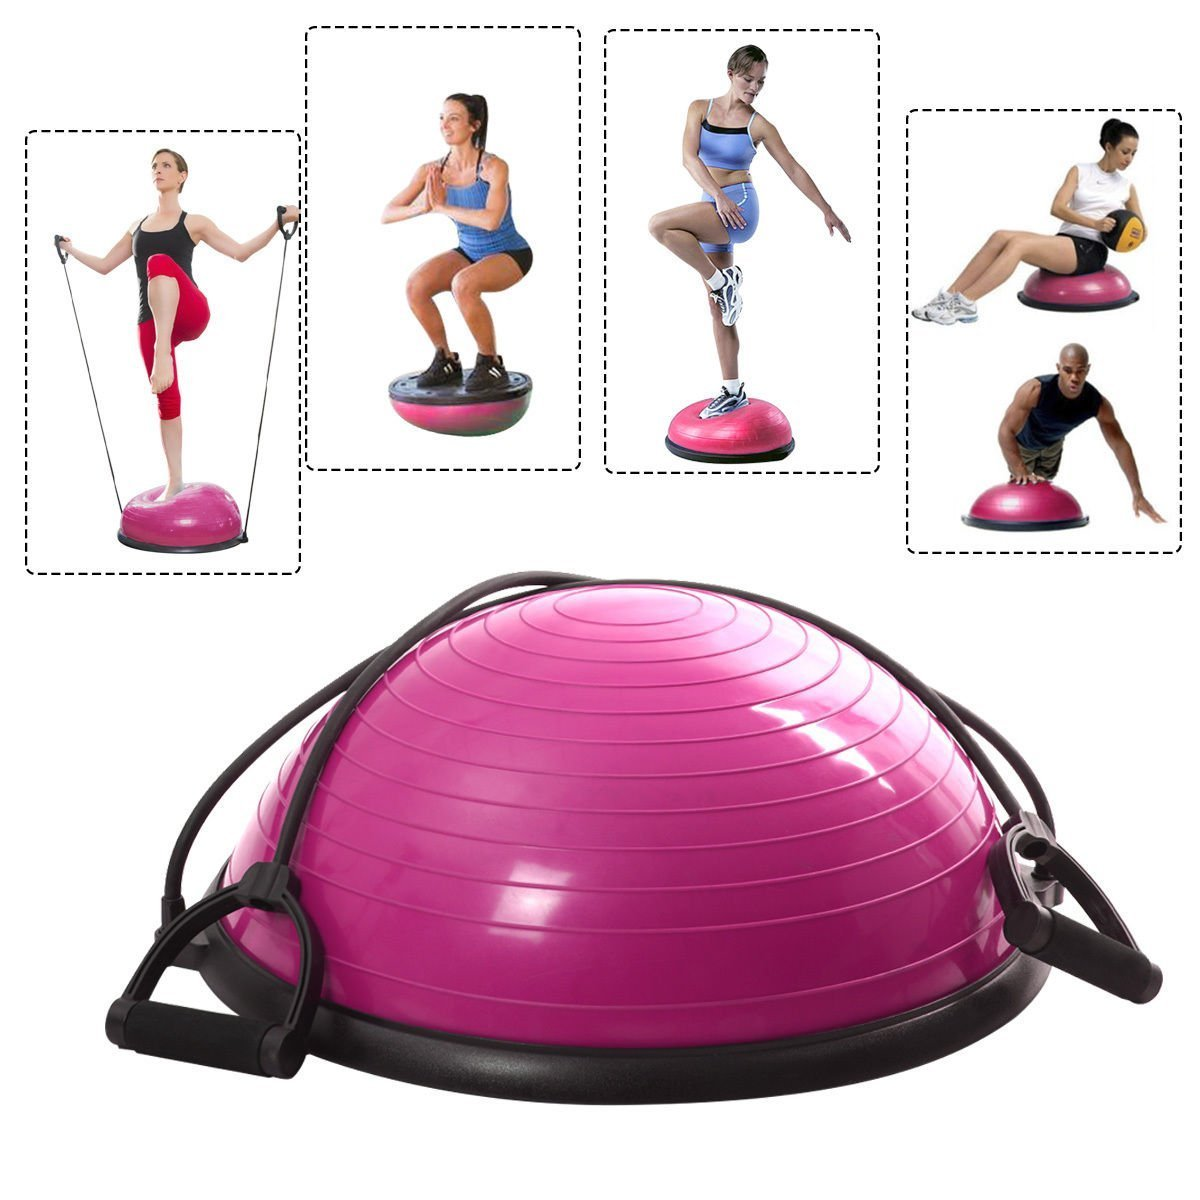 Giantex Ball Balance Trainer